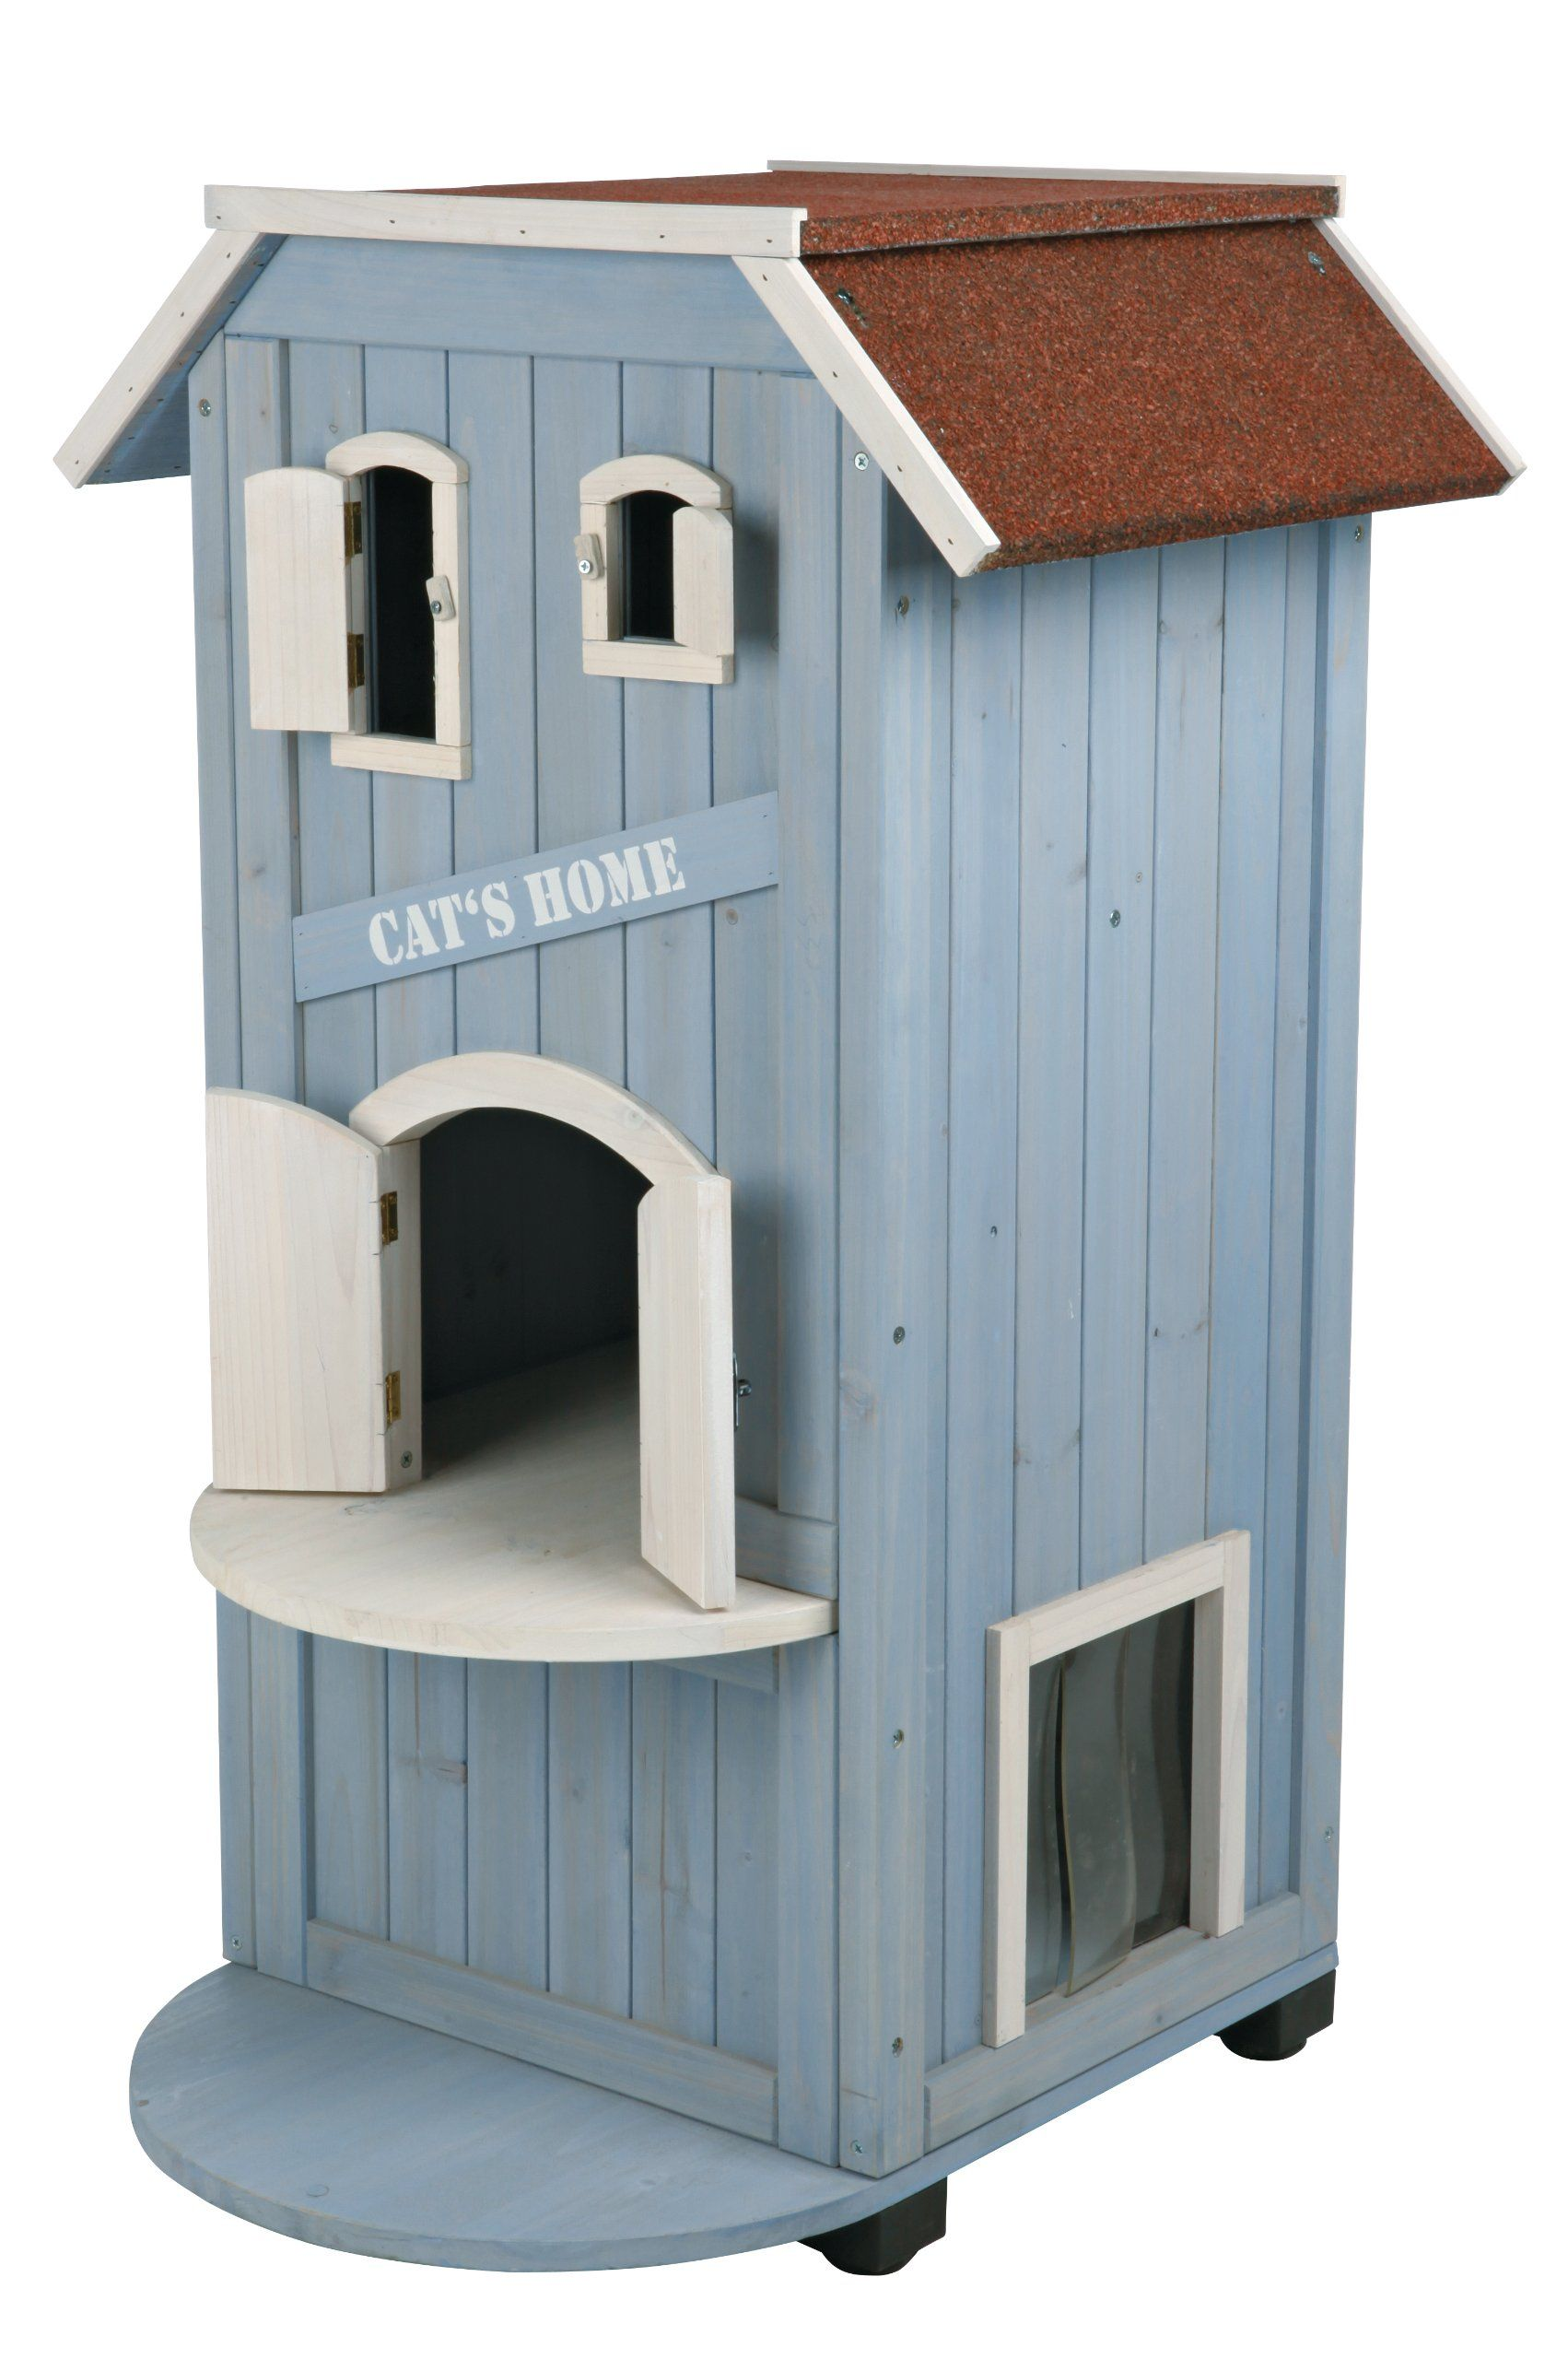 TRIXIE Pet Products 3Story Cat's Home Outdoor cat house